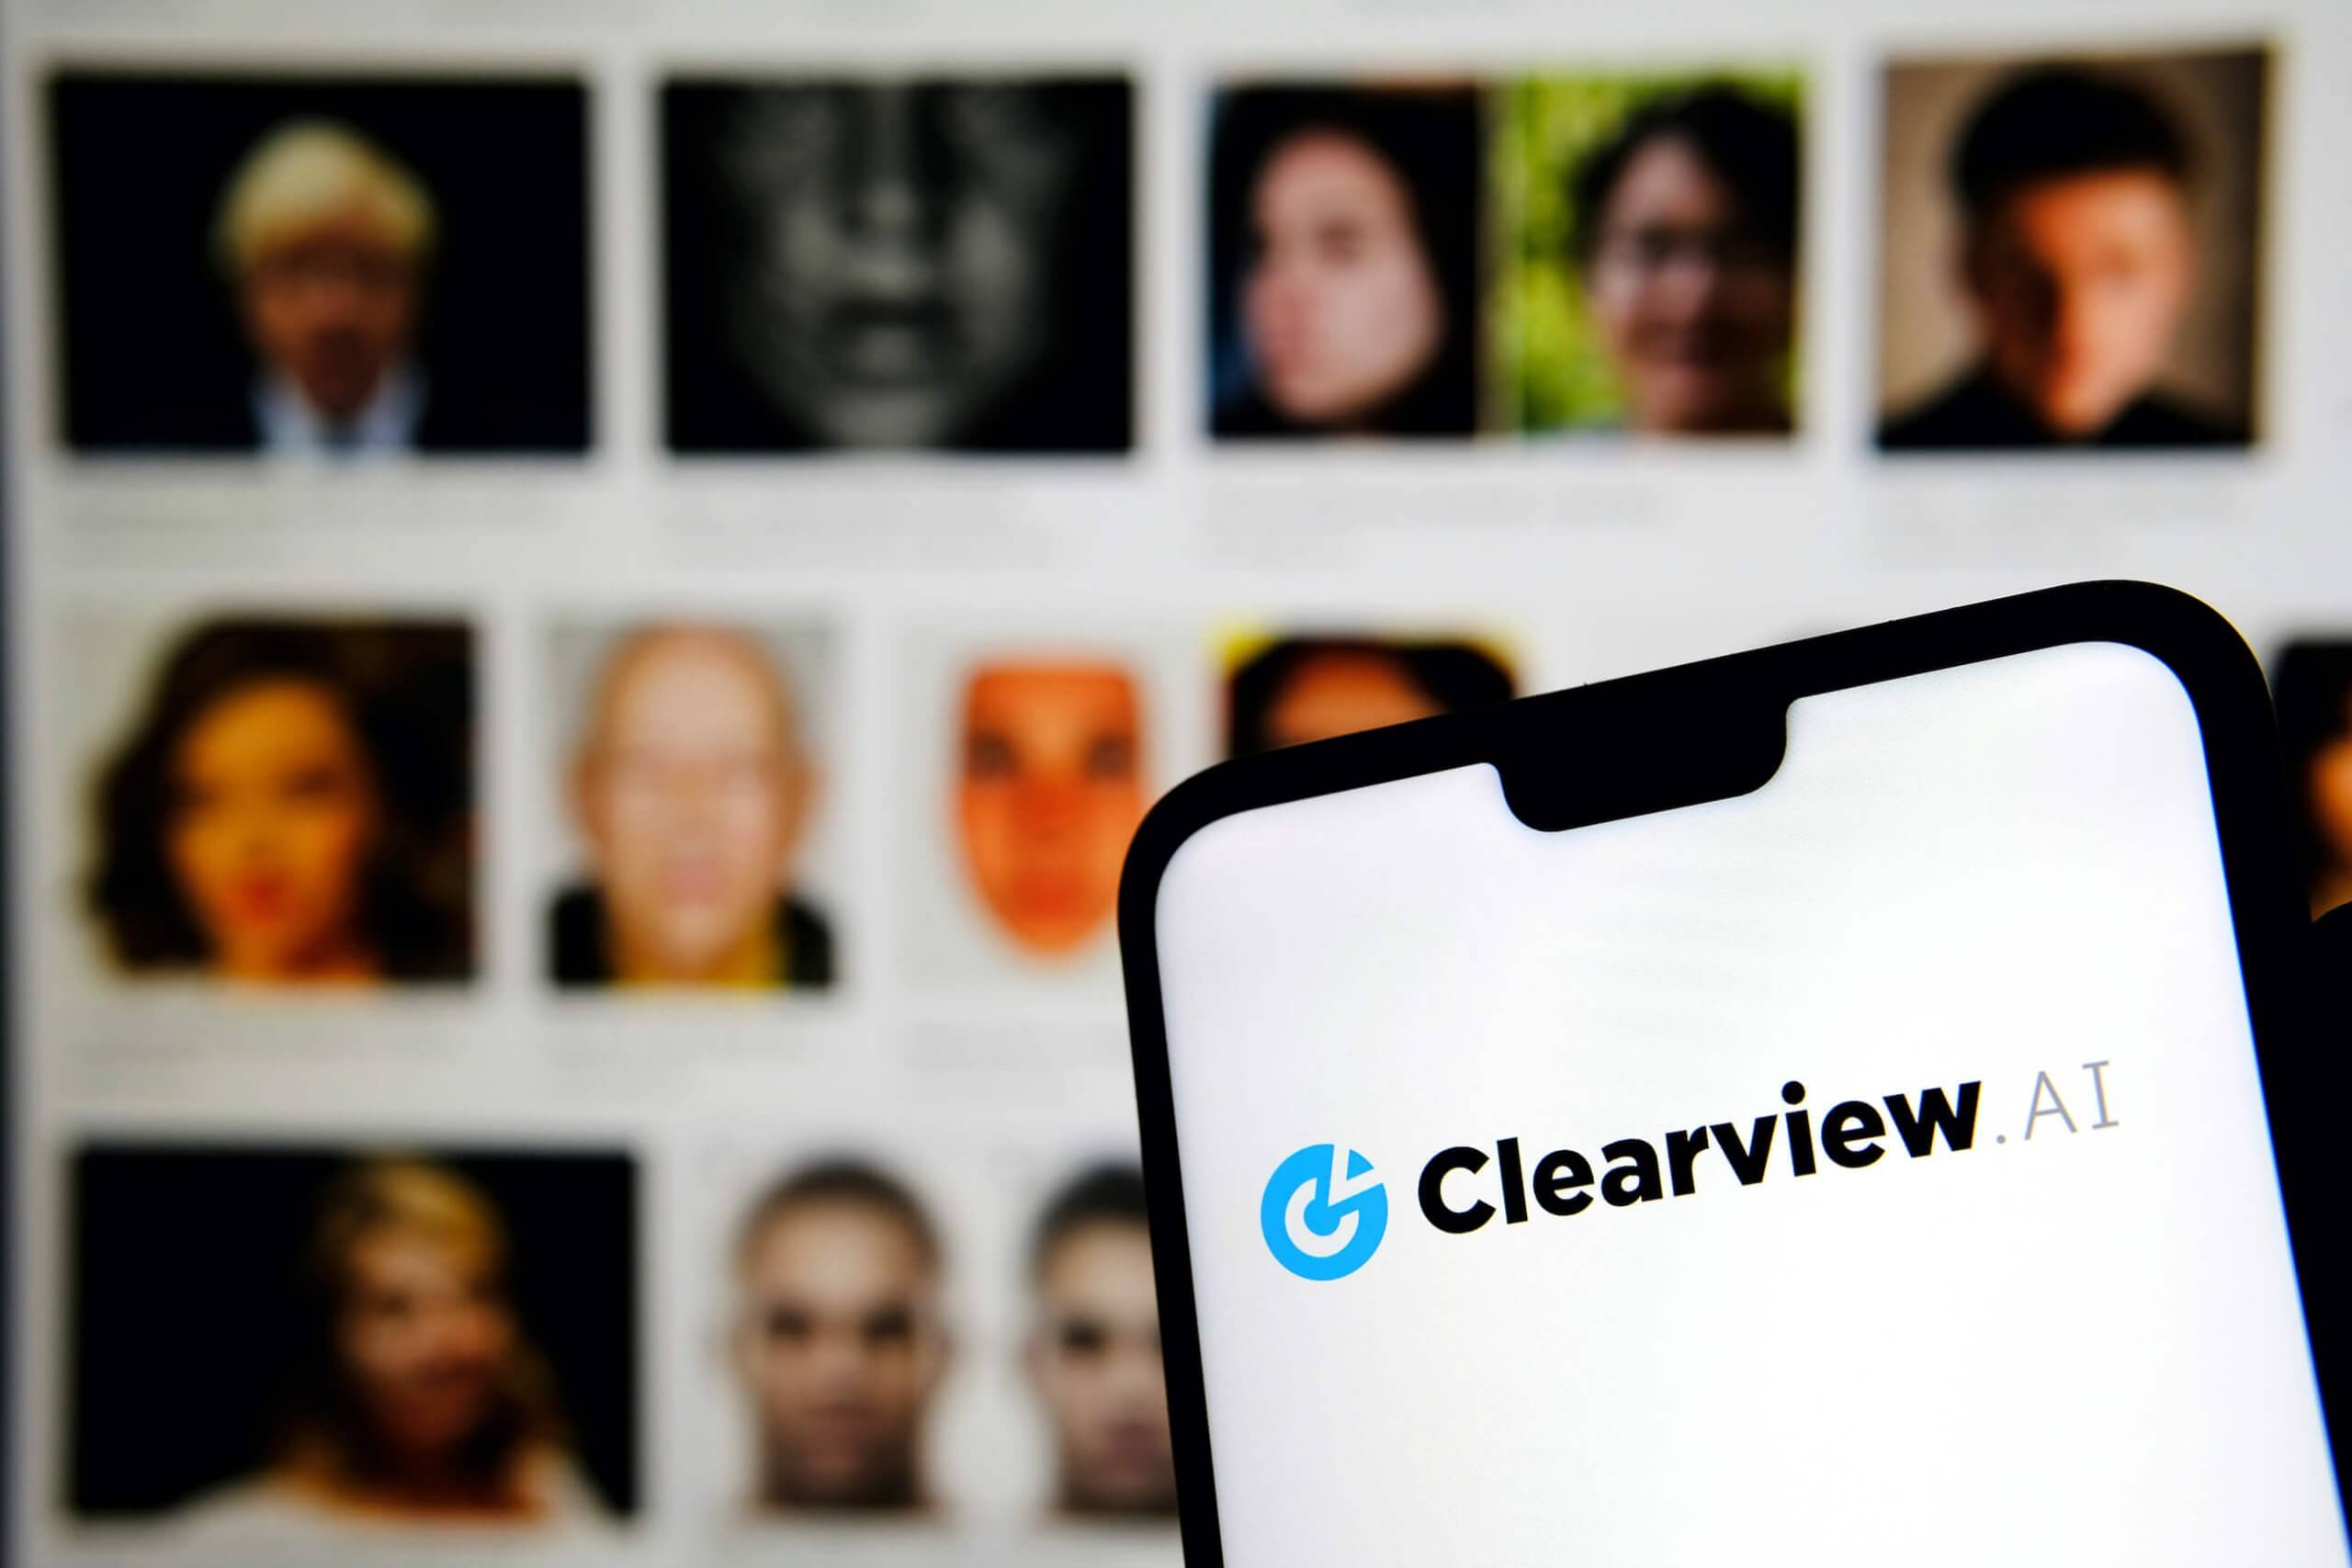 Vermont sues Clearview AI for violating state privacy laws